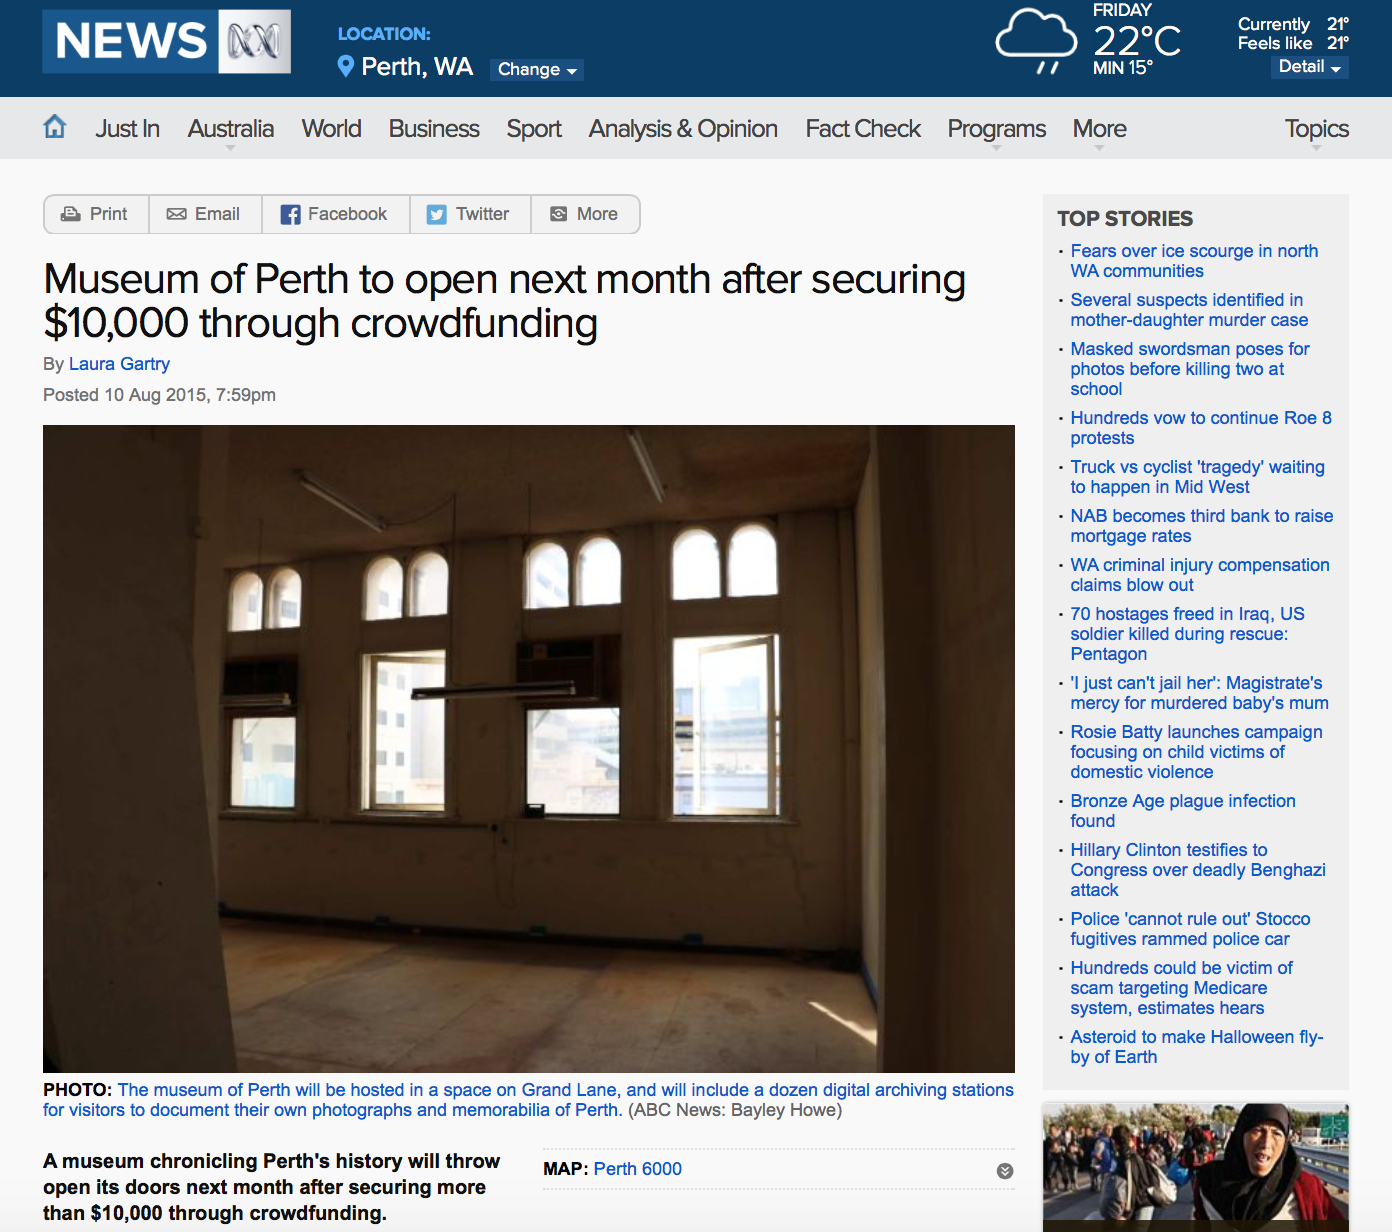 """""""Museum of Perth to open next month after securing $10,000 through crowdfunding"""" - ABC News, 10 August 2015"""